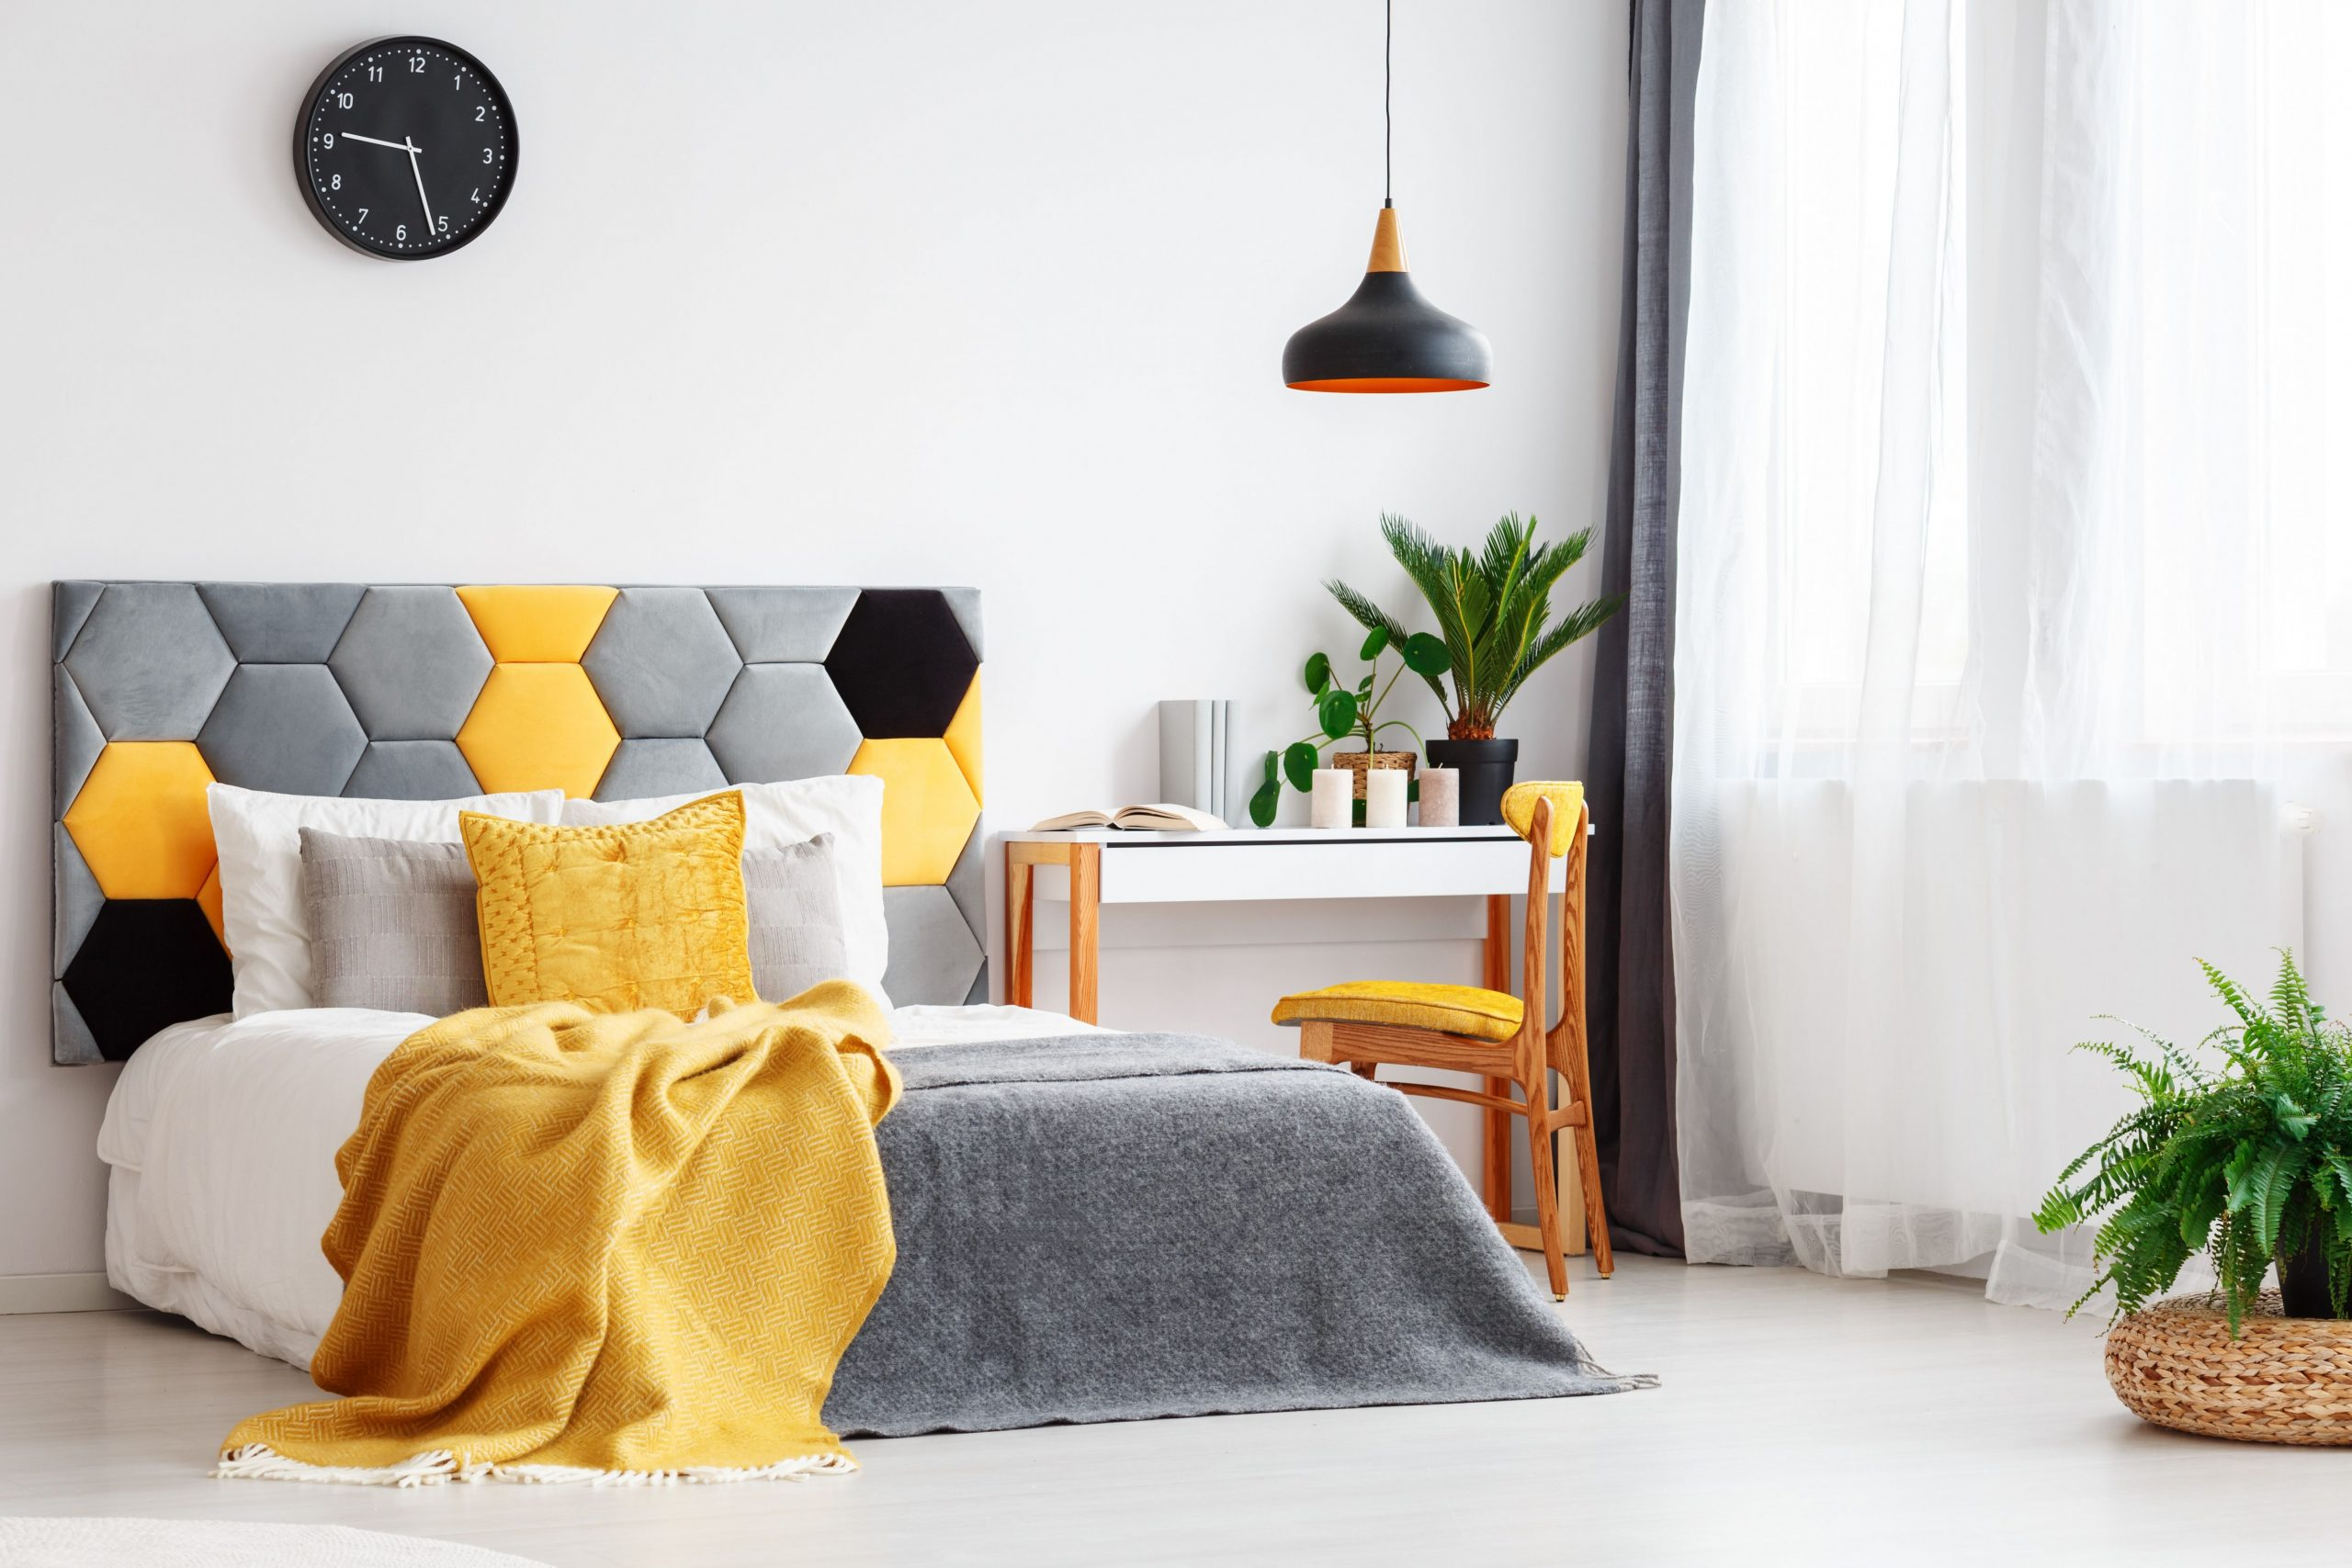 How to Decorate a Bedroom With Yellow - Bedroom Ideas Yellow And Blue